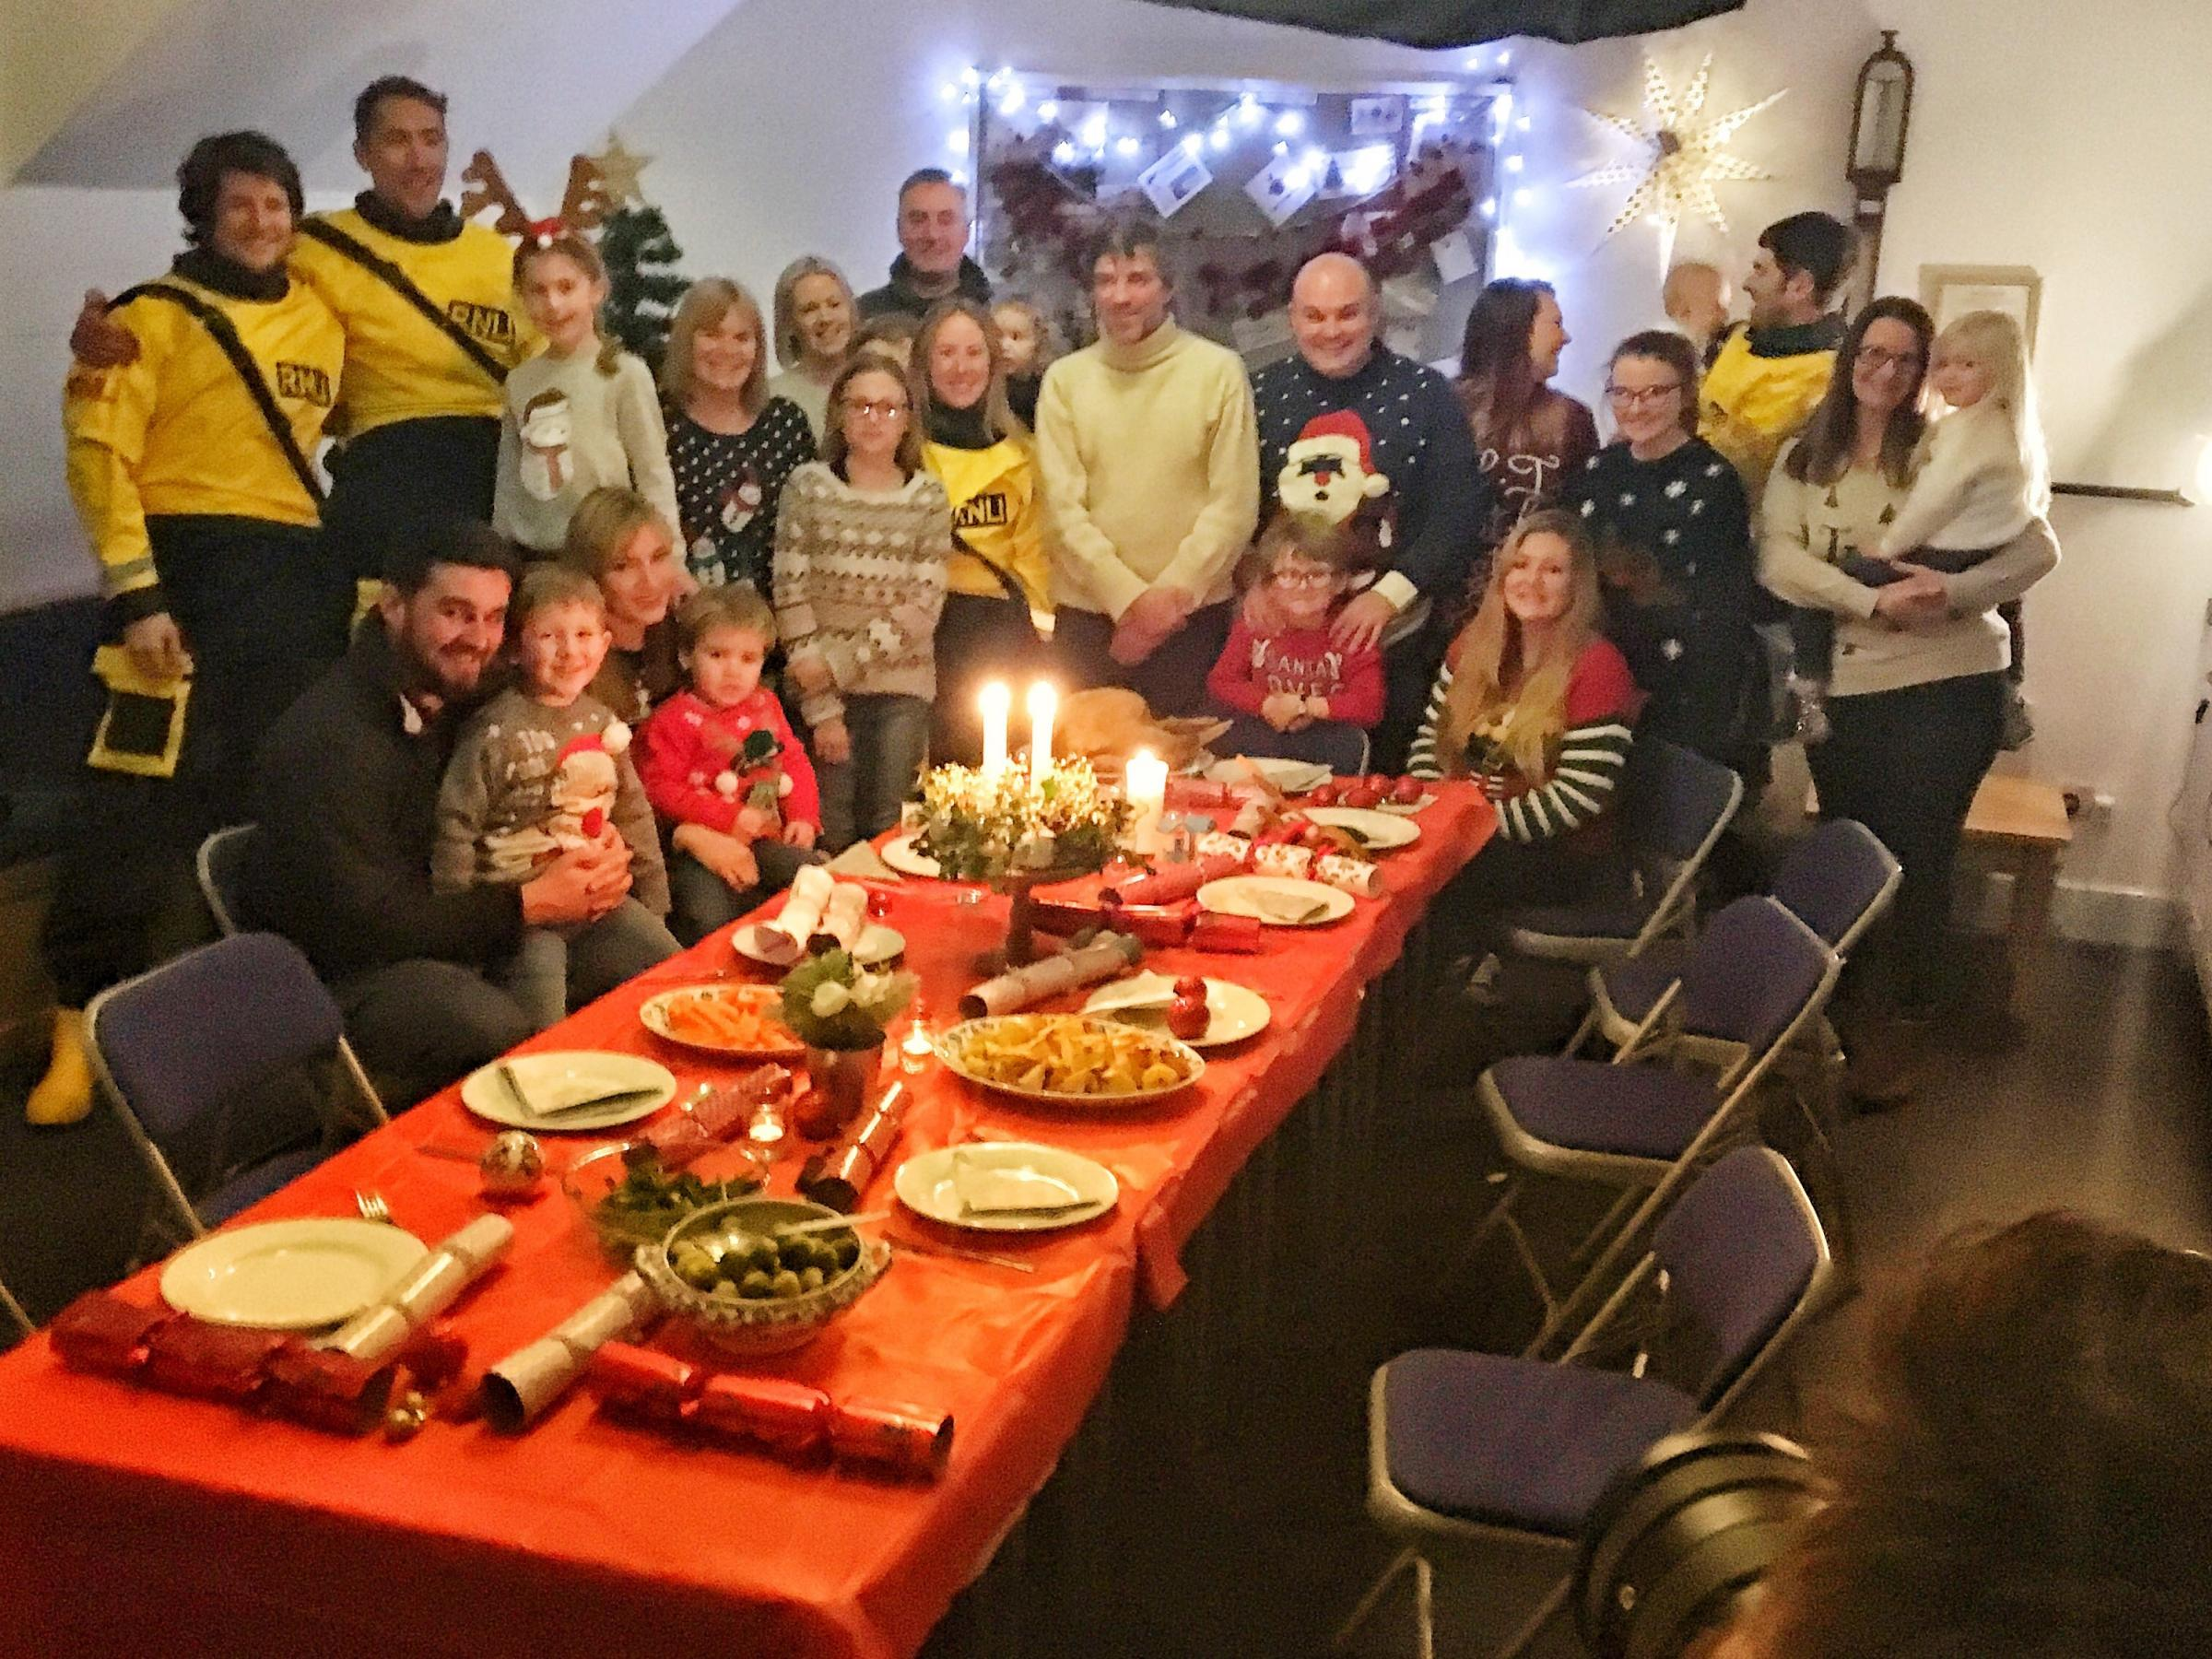 Christmas came early for these life-saving volunteers